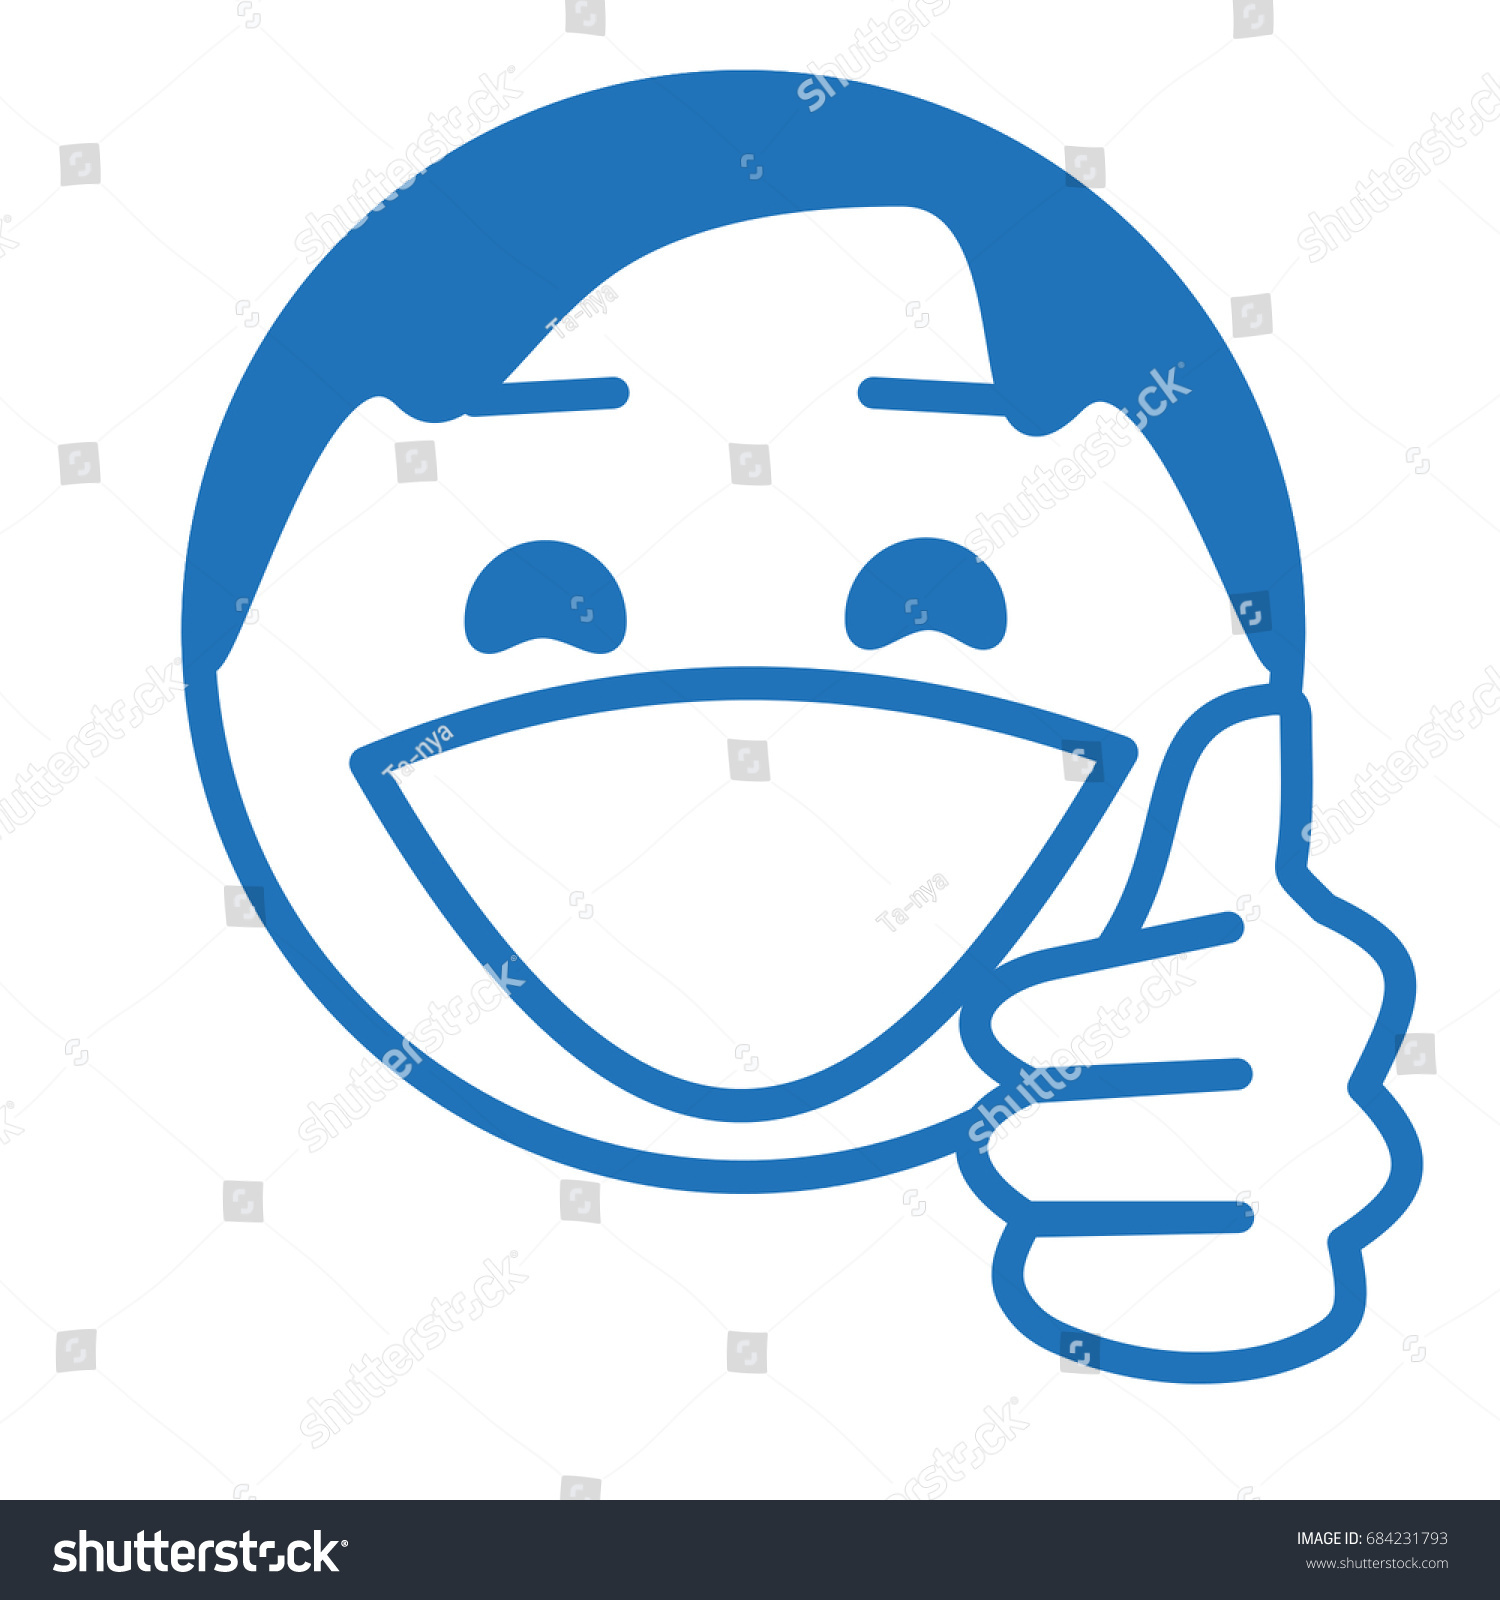 hight resolution of man with a thumb up gesture you re awesome facial expression like or plus one hundred social networks emoticon circle or ball shaped emoji